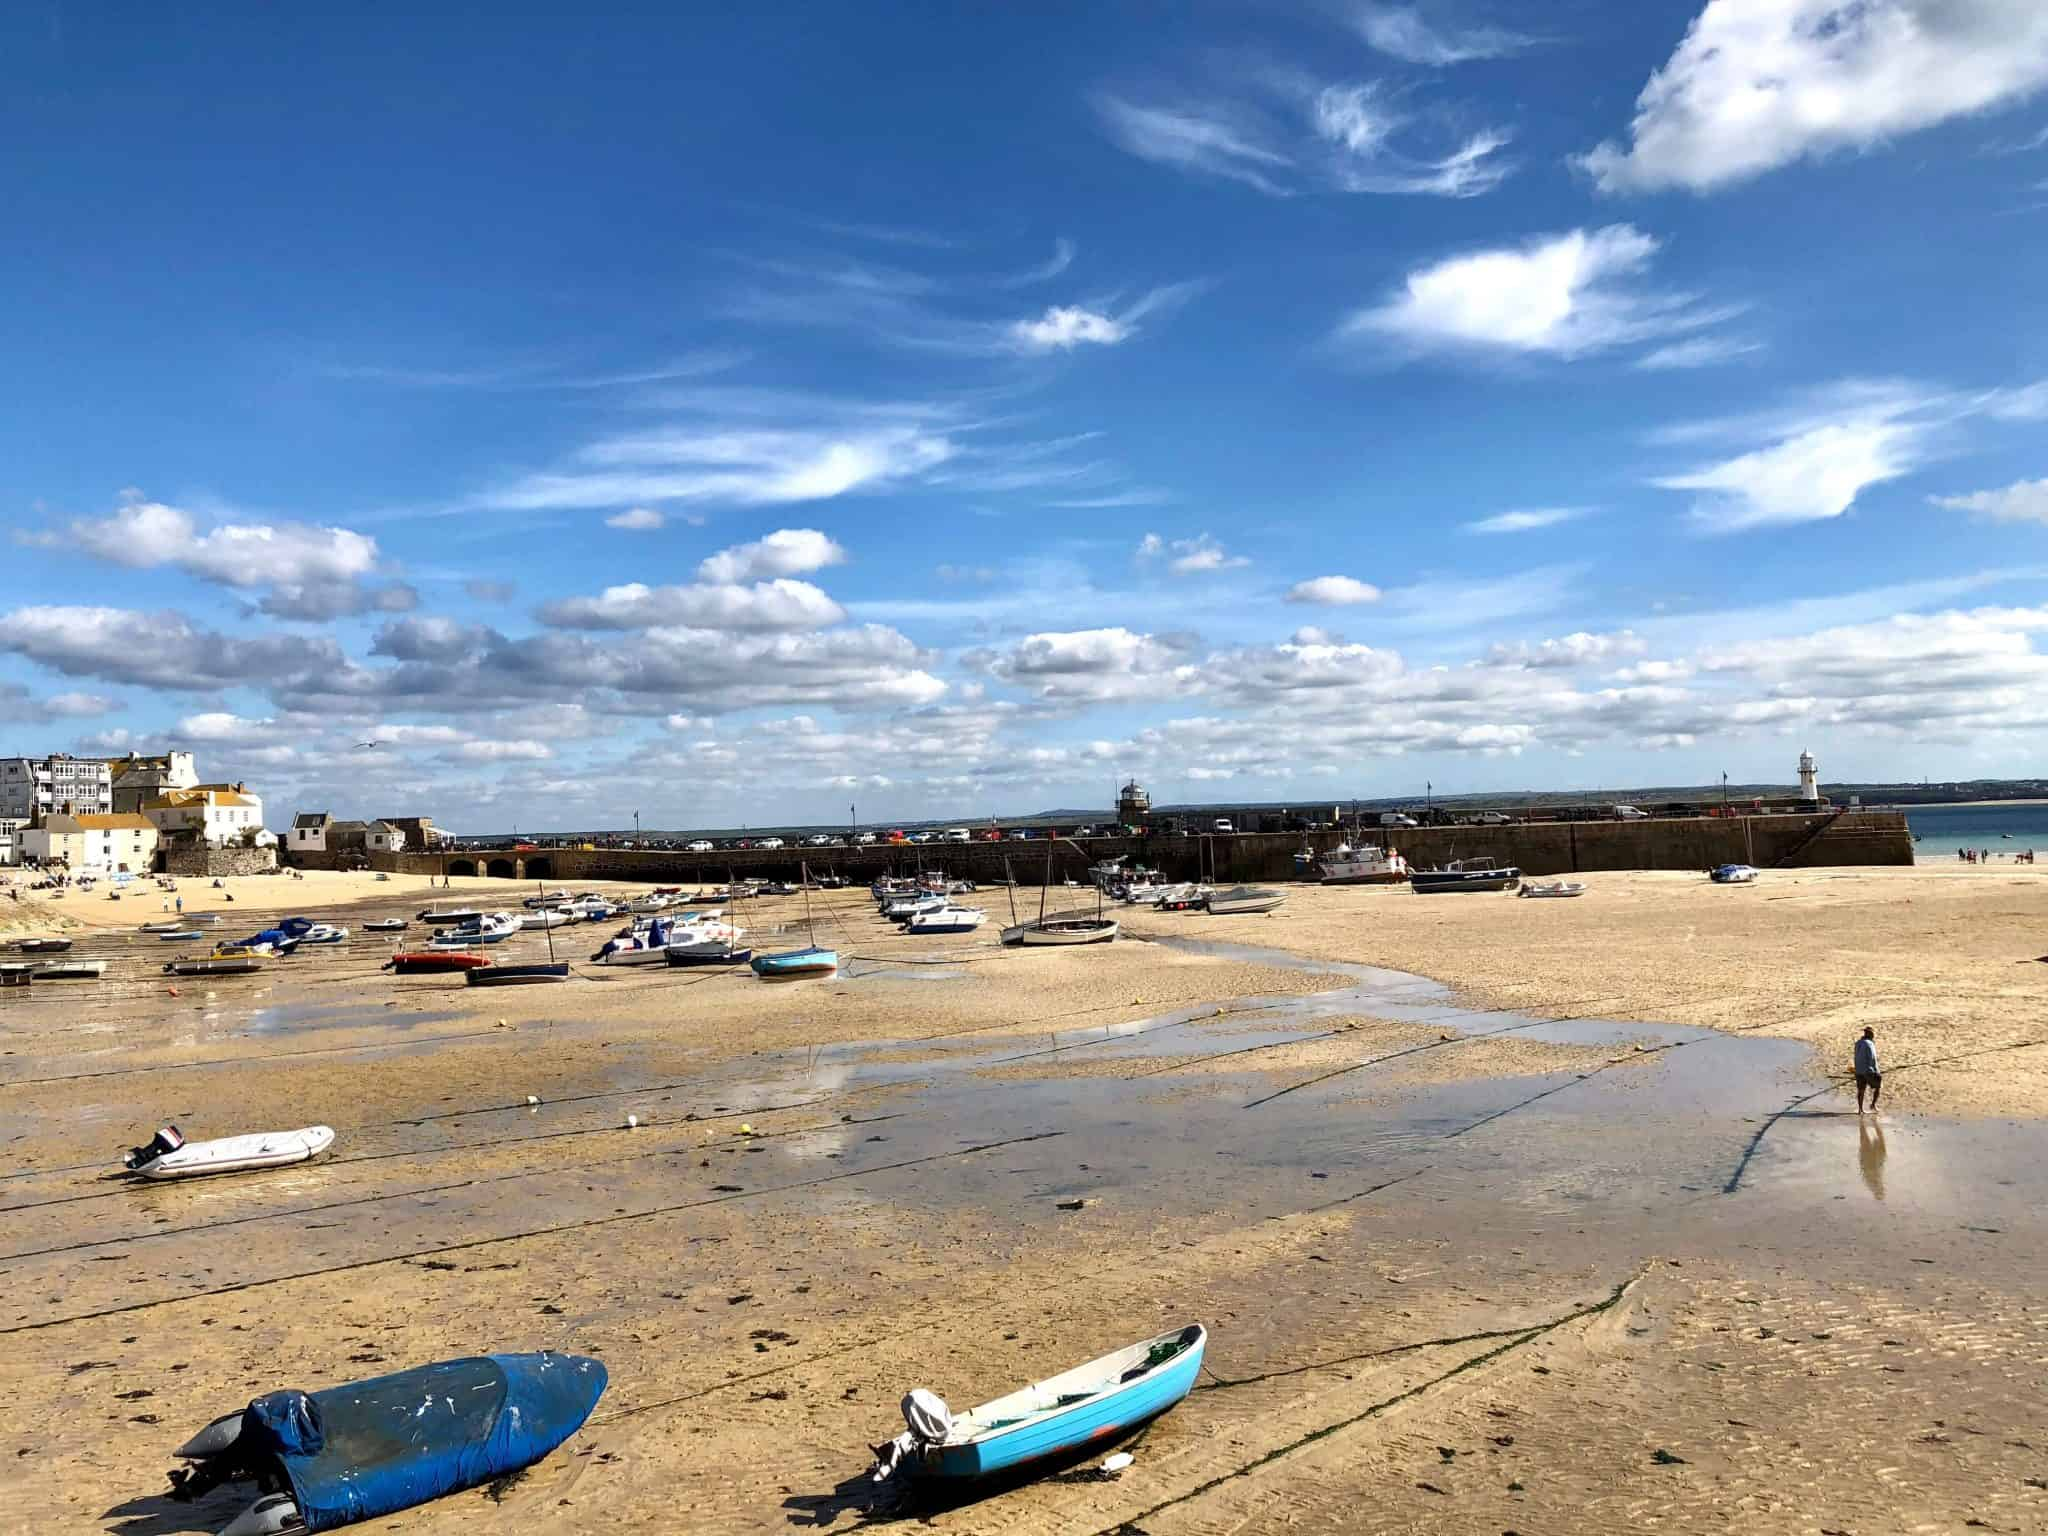 The Most Beautiful Beaches To Visit In Cornwall And Devon - St Ives